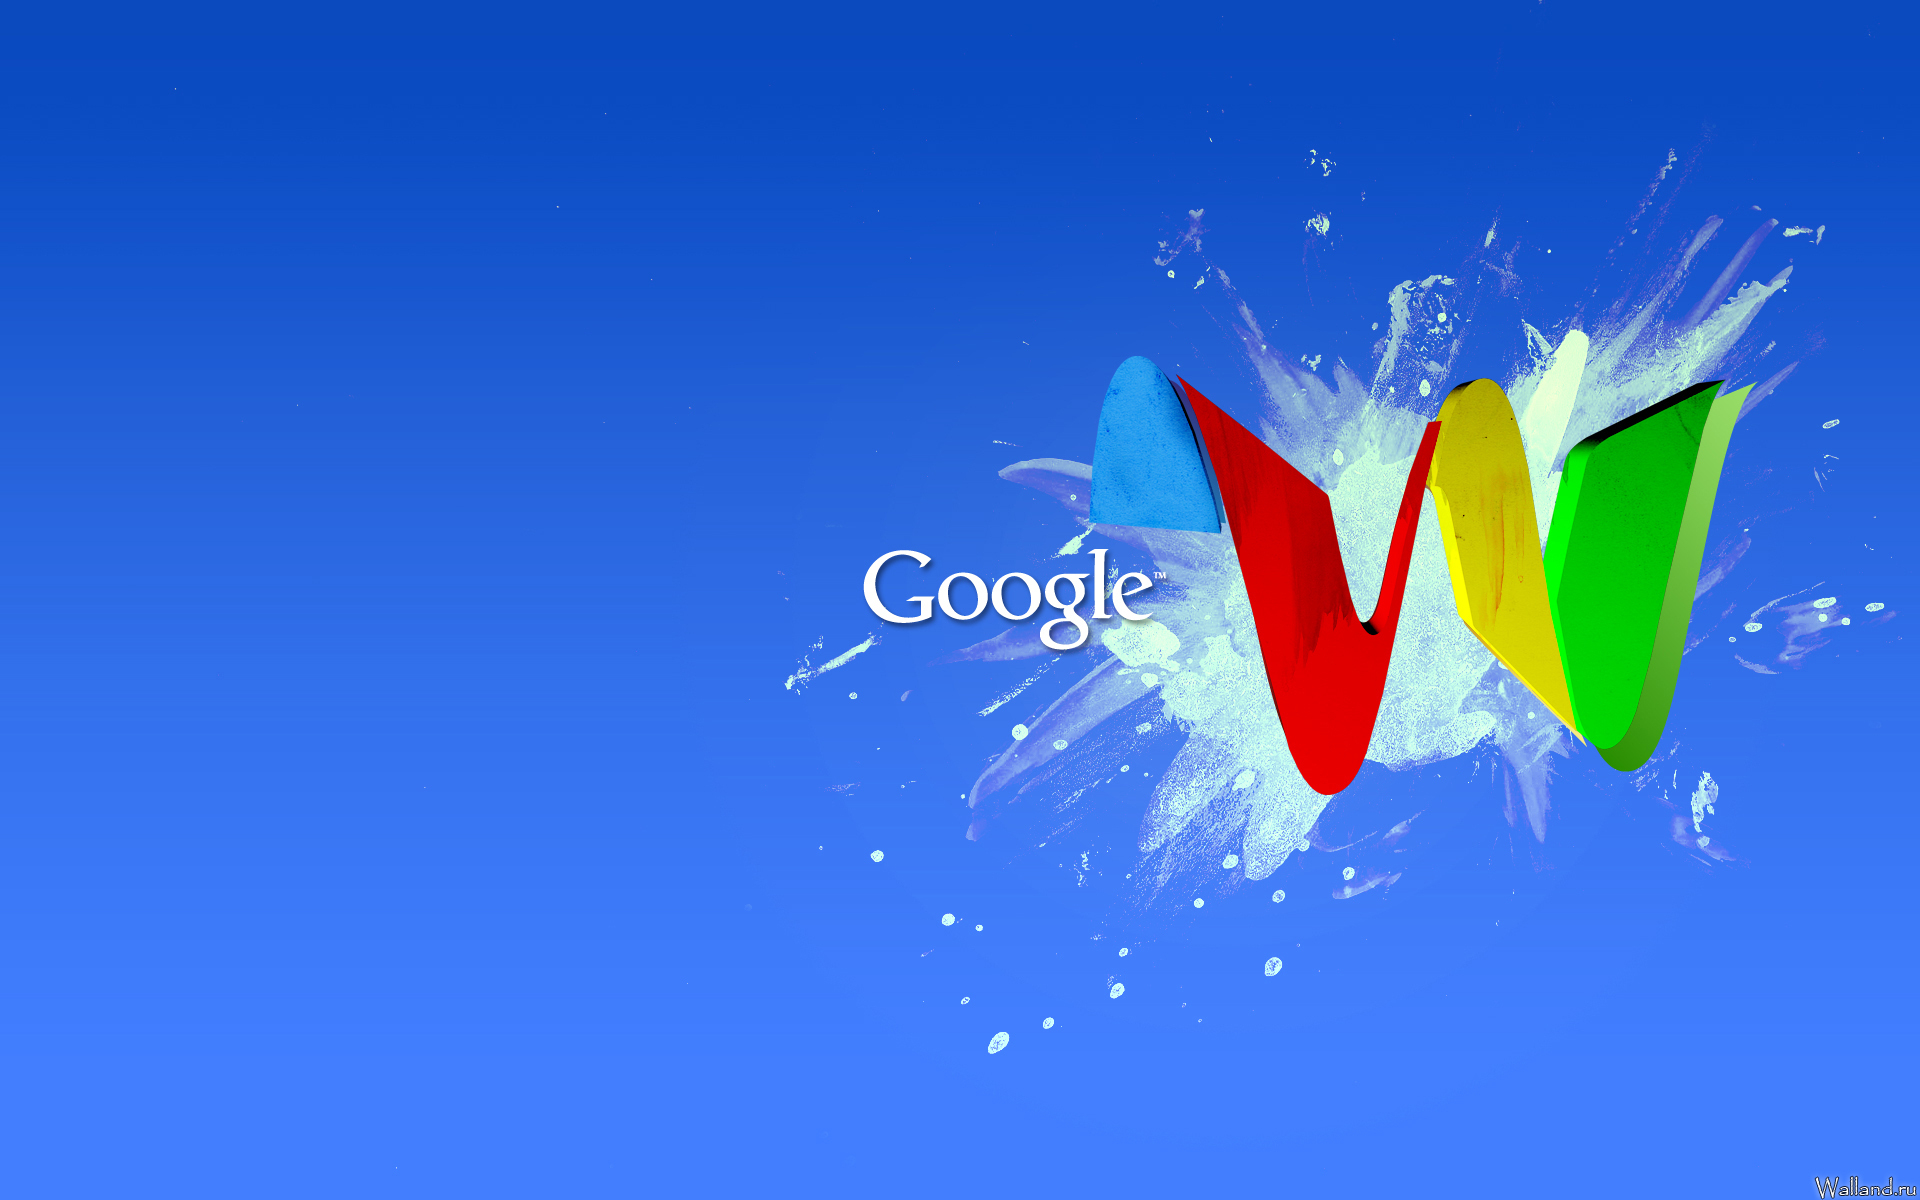 WWW Google Com Wallpaper